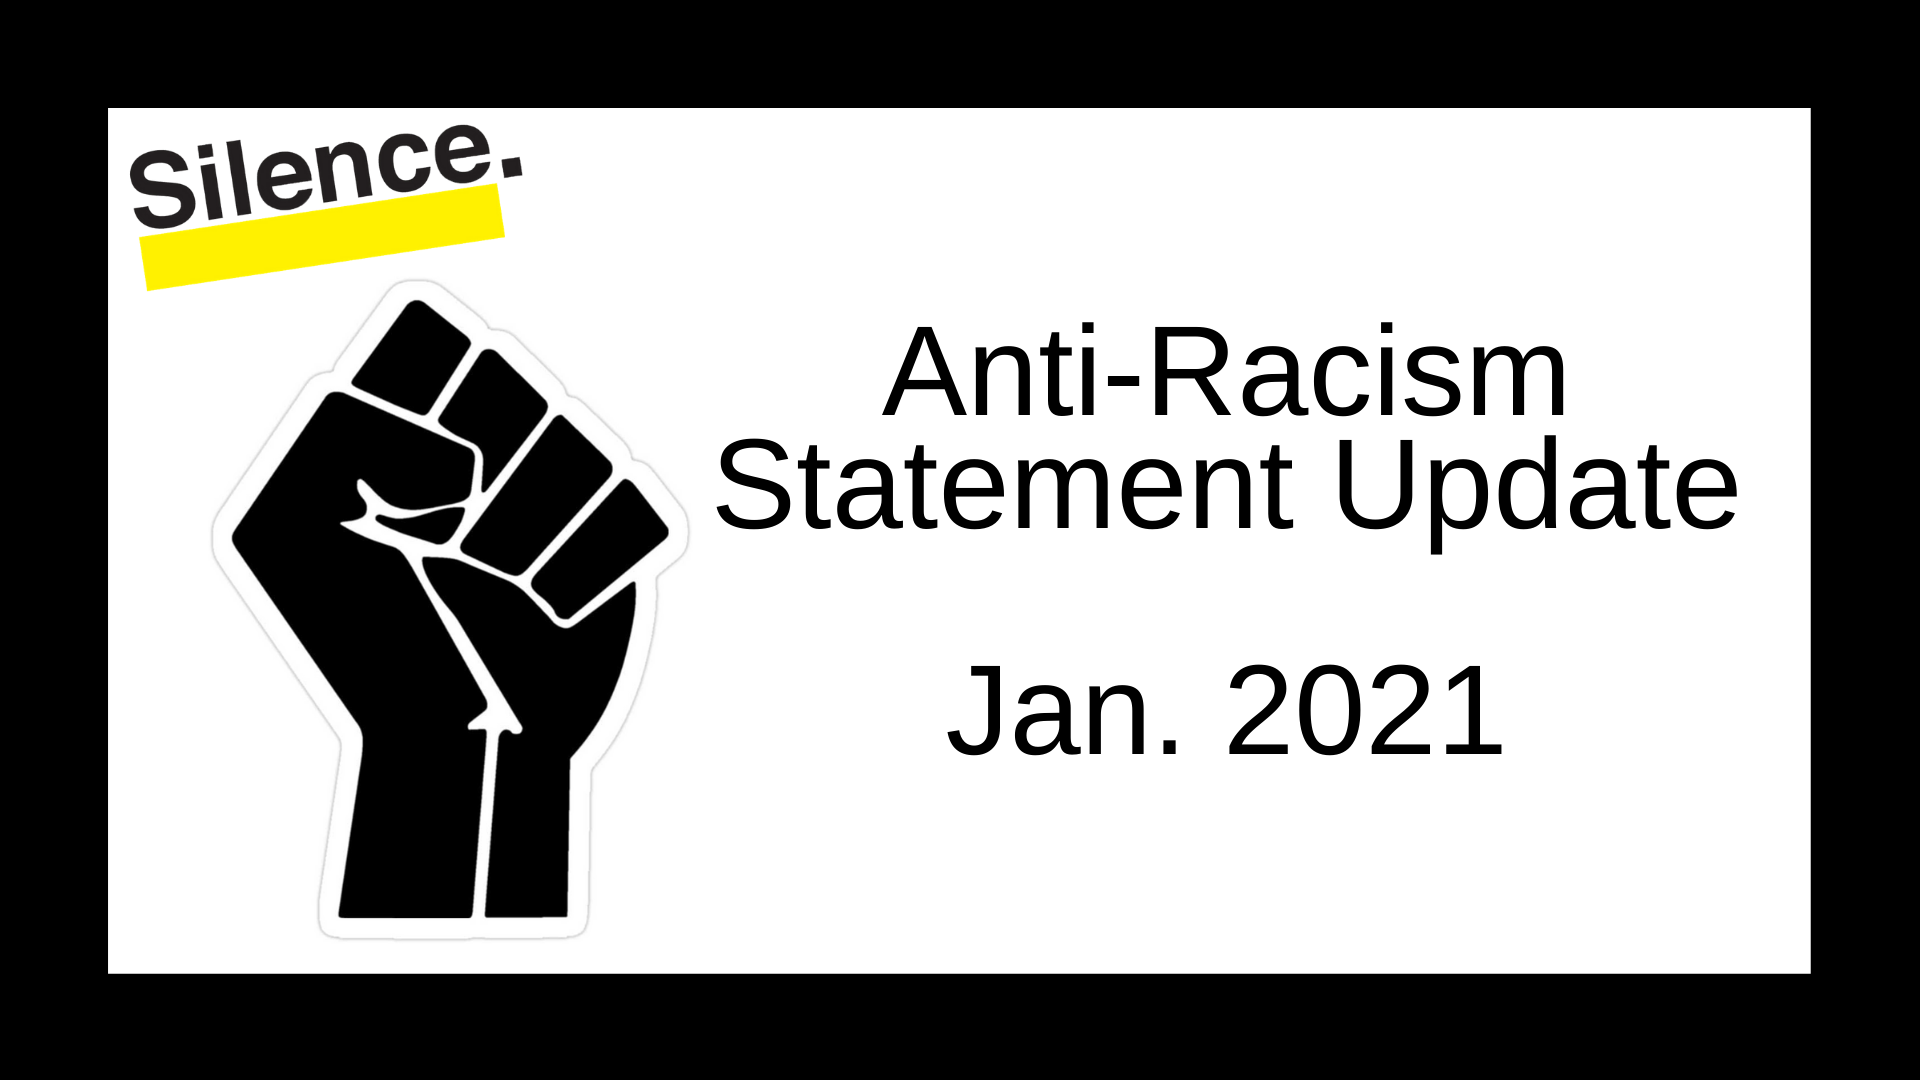 Anti-Racism Statement Update (Jan. 2021)